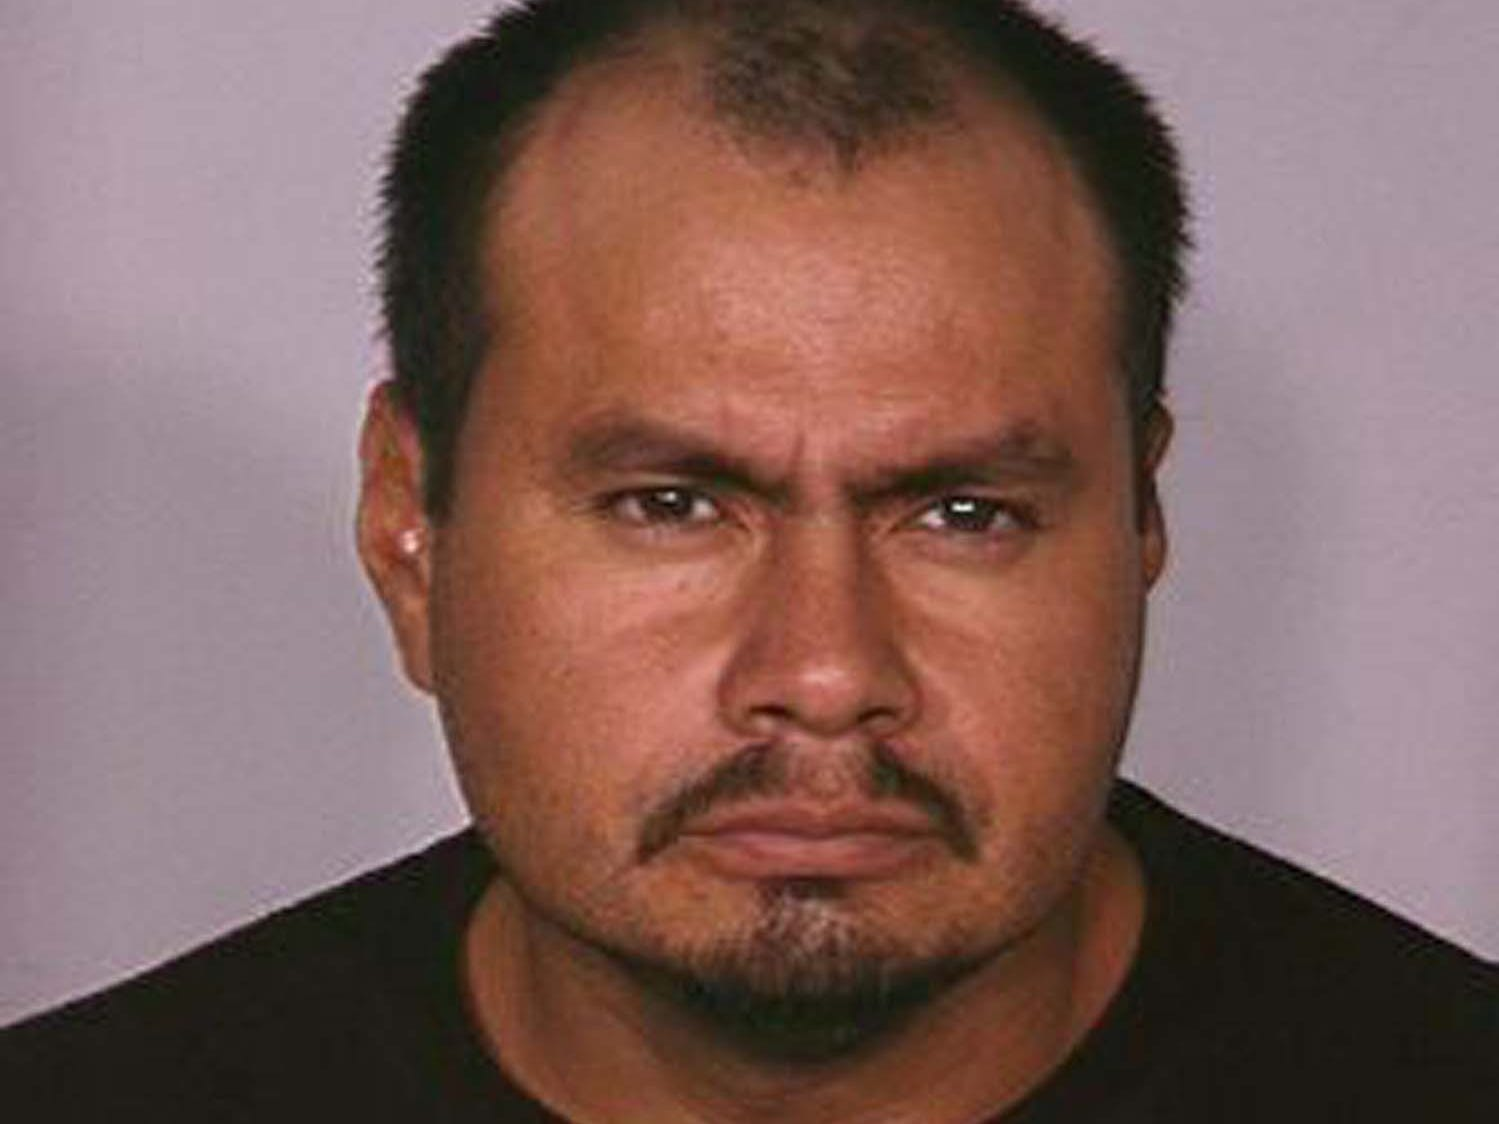 Juan Fuentes Quintero, 47, is wanted by the Nevada Department of Public Safety's Investigation Division for trafficking in and possession with intent to sell methamphetamine and heroin. He is 5 feet 7 inches tall and weighs 175 pounds. He has brown hair and eyes and is known to abuse alcohol.